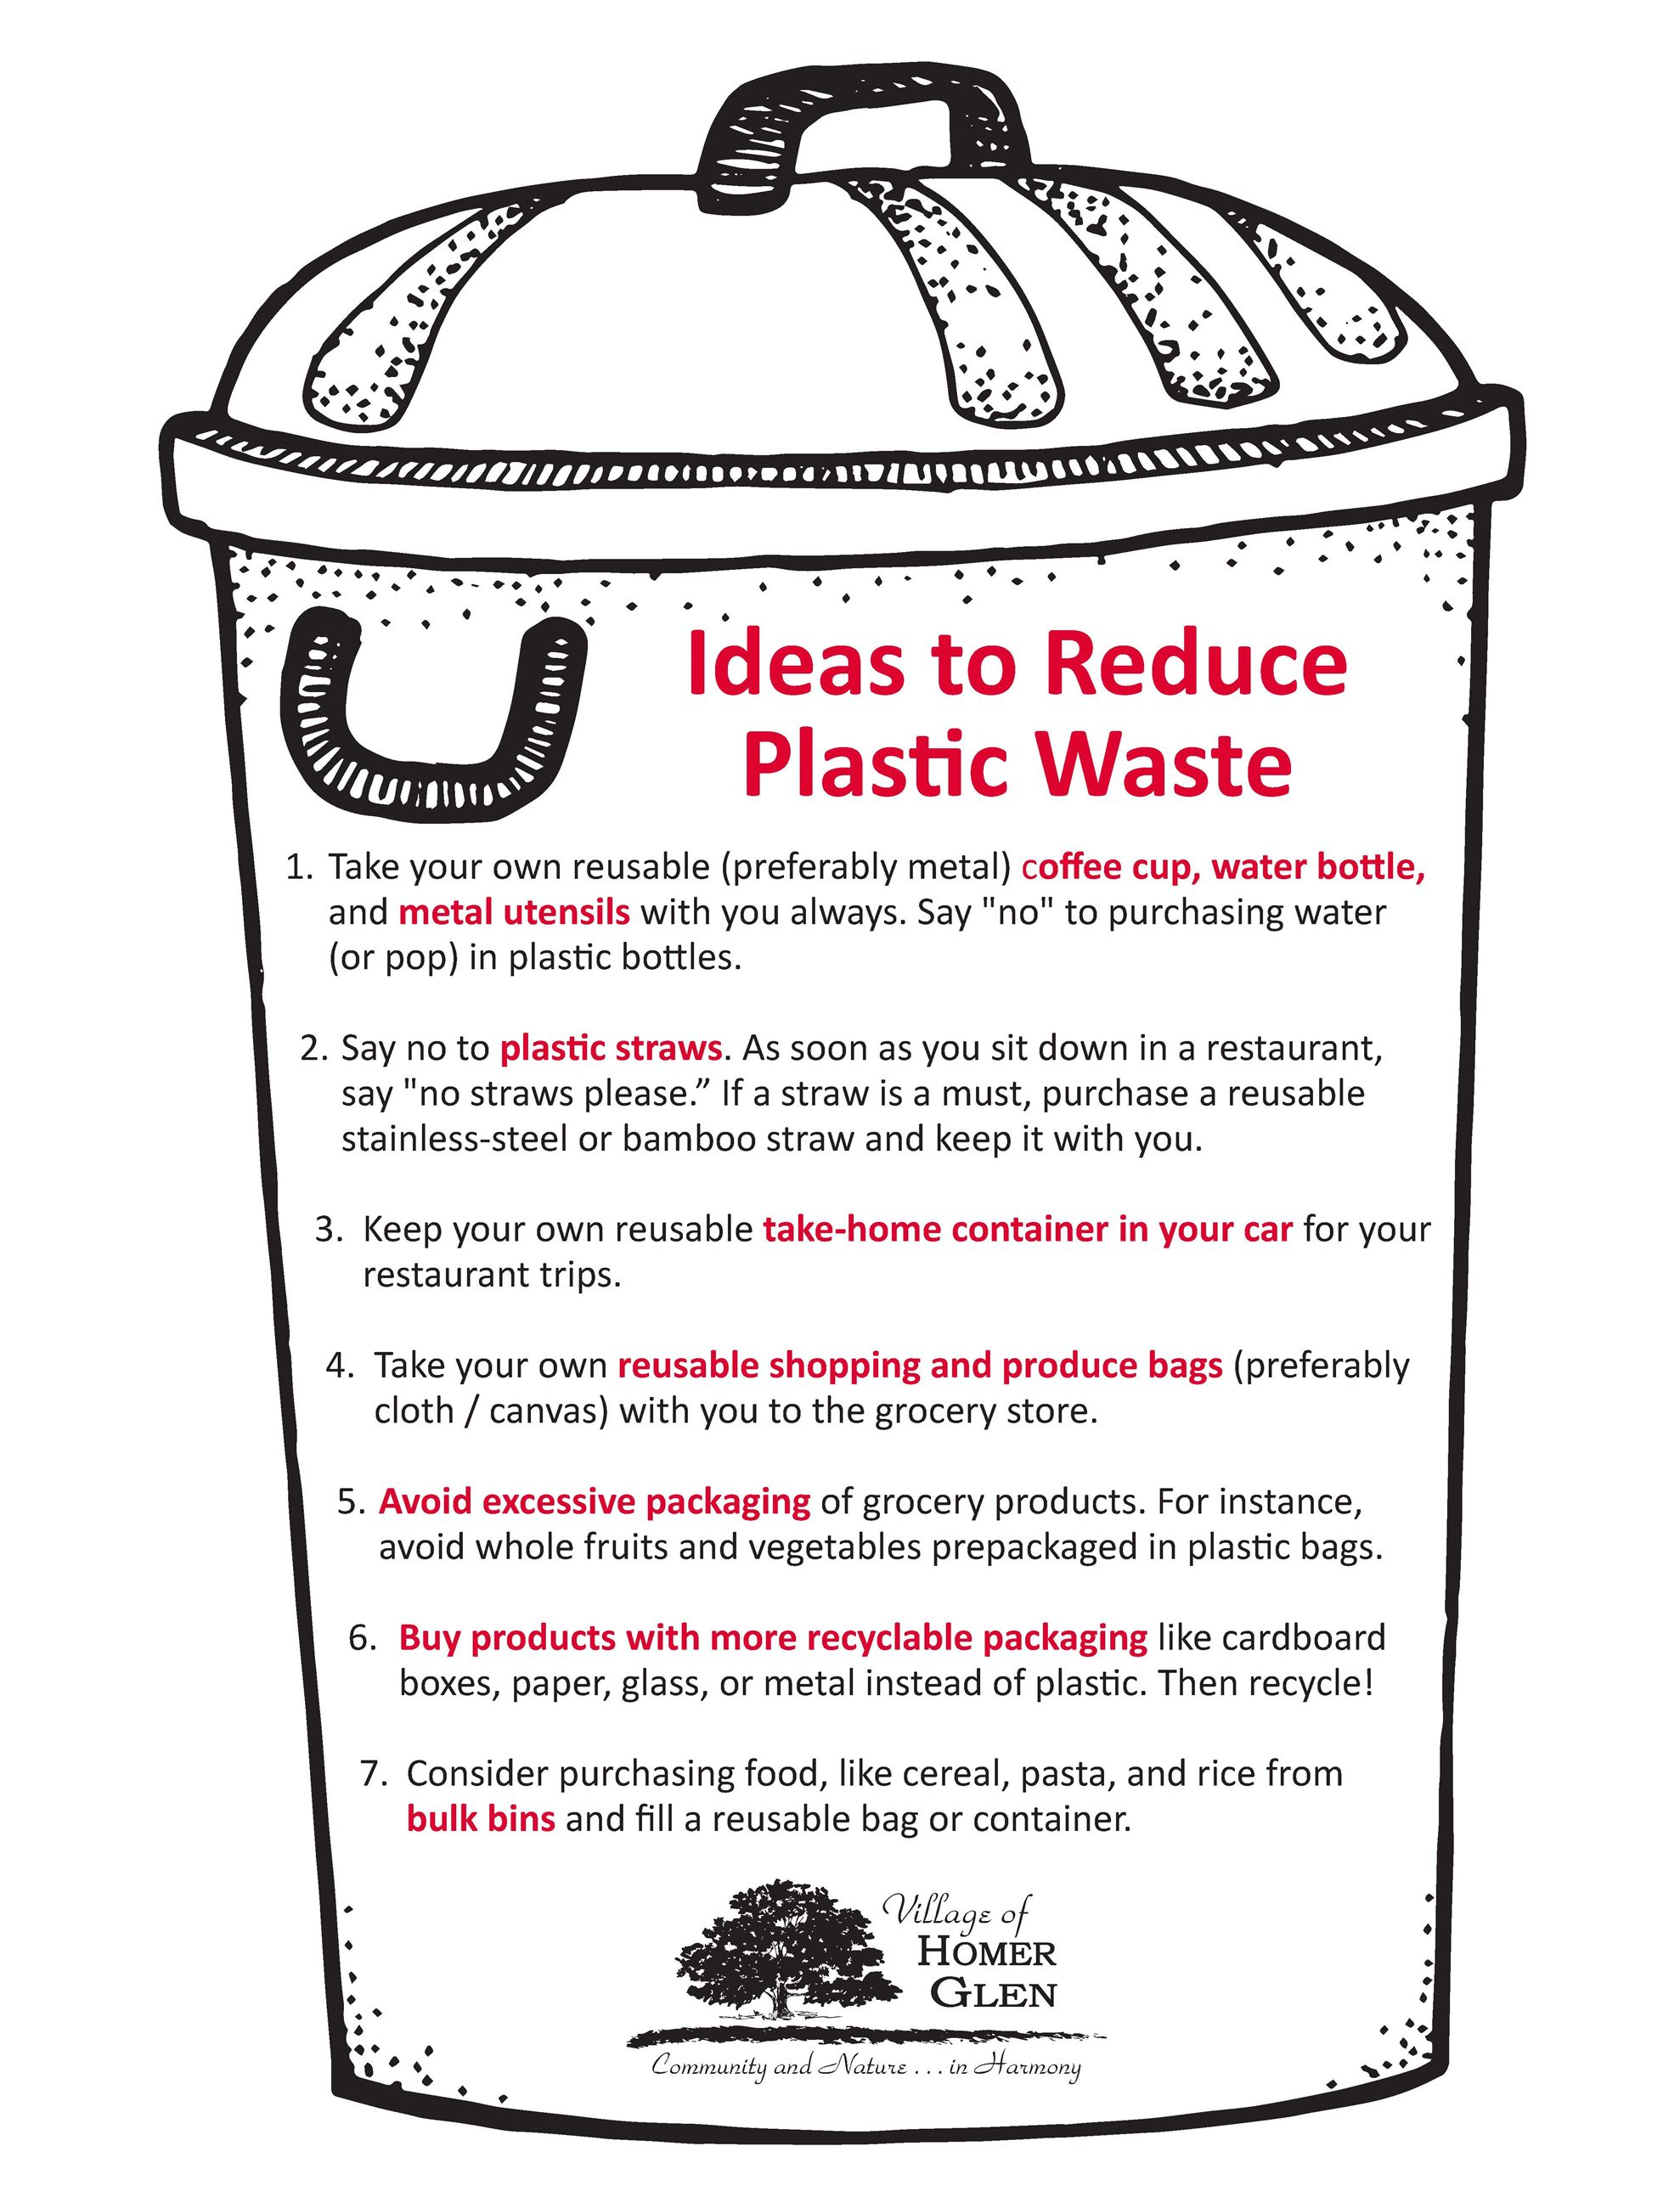 Ideas to Reduce Plastic Waste